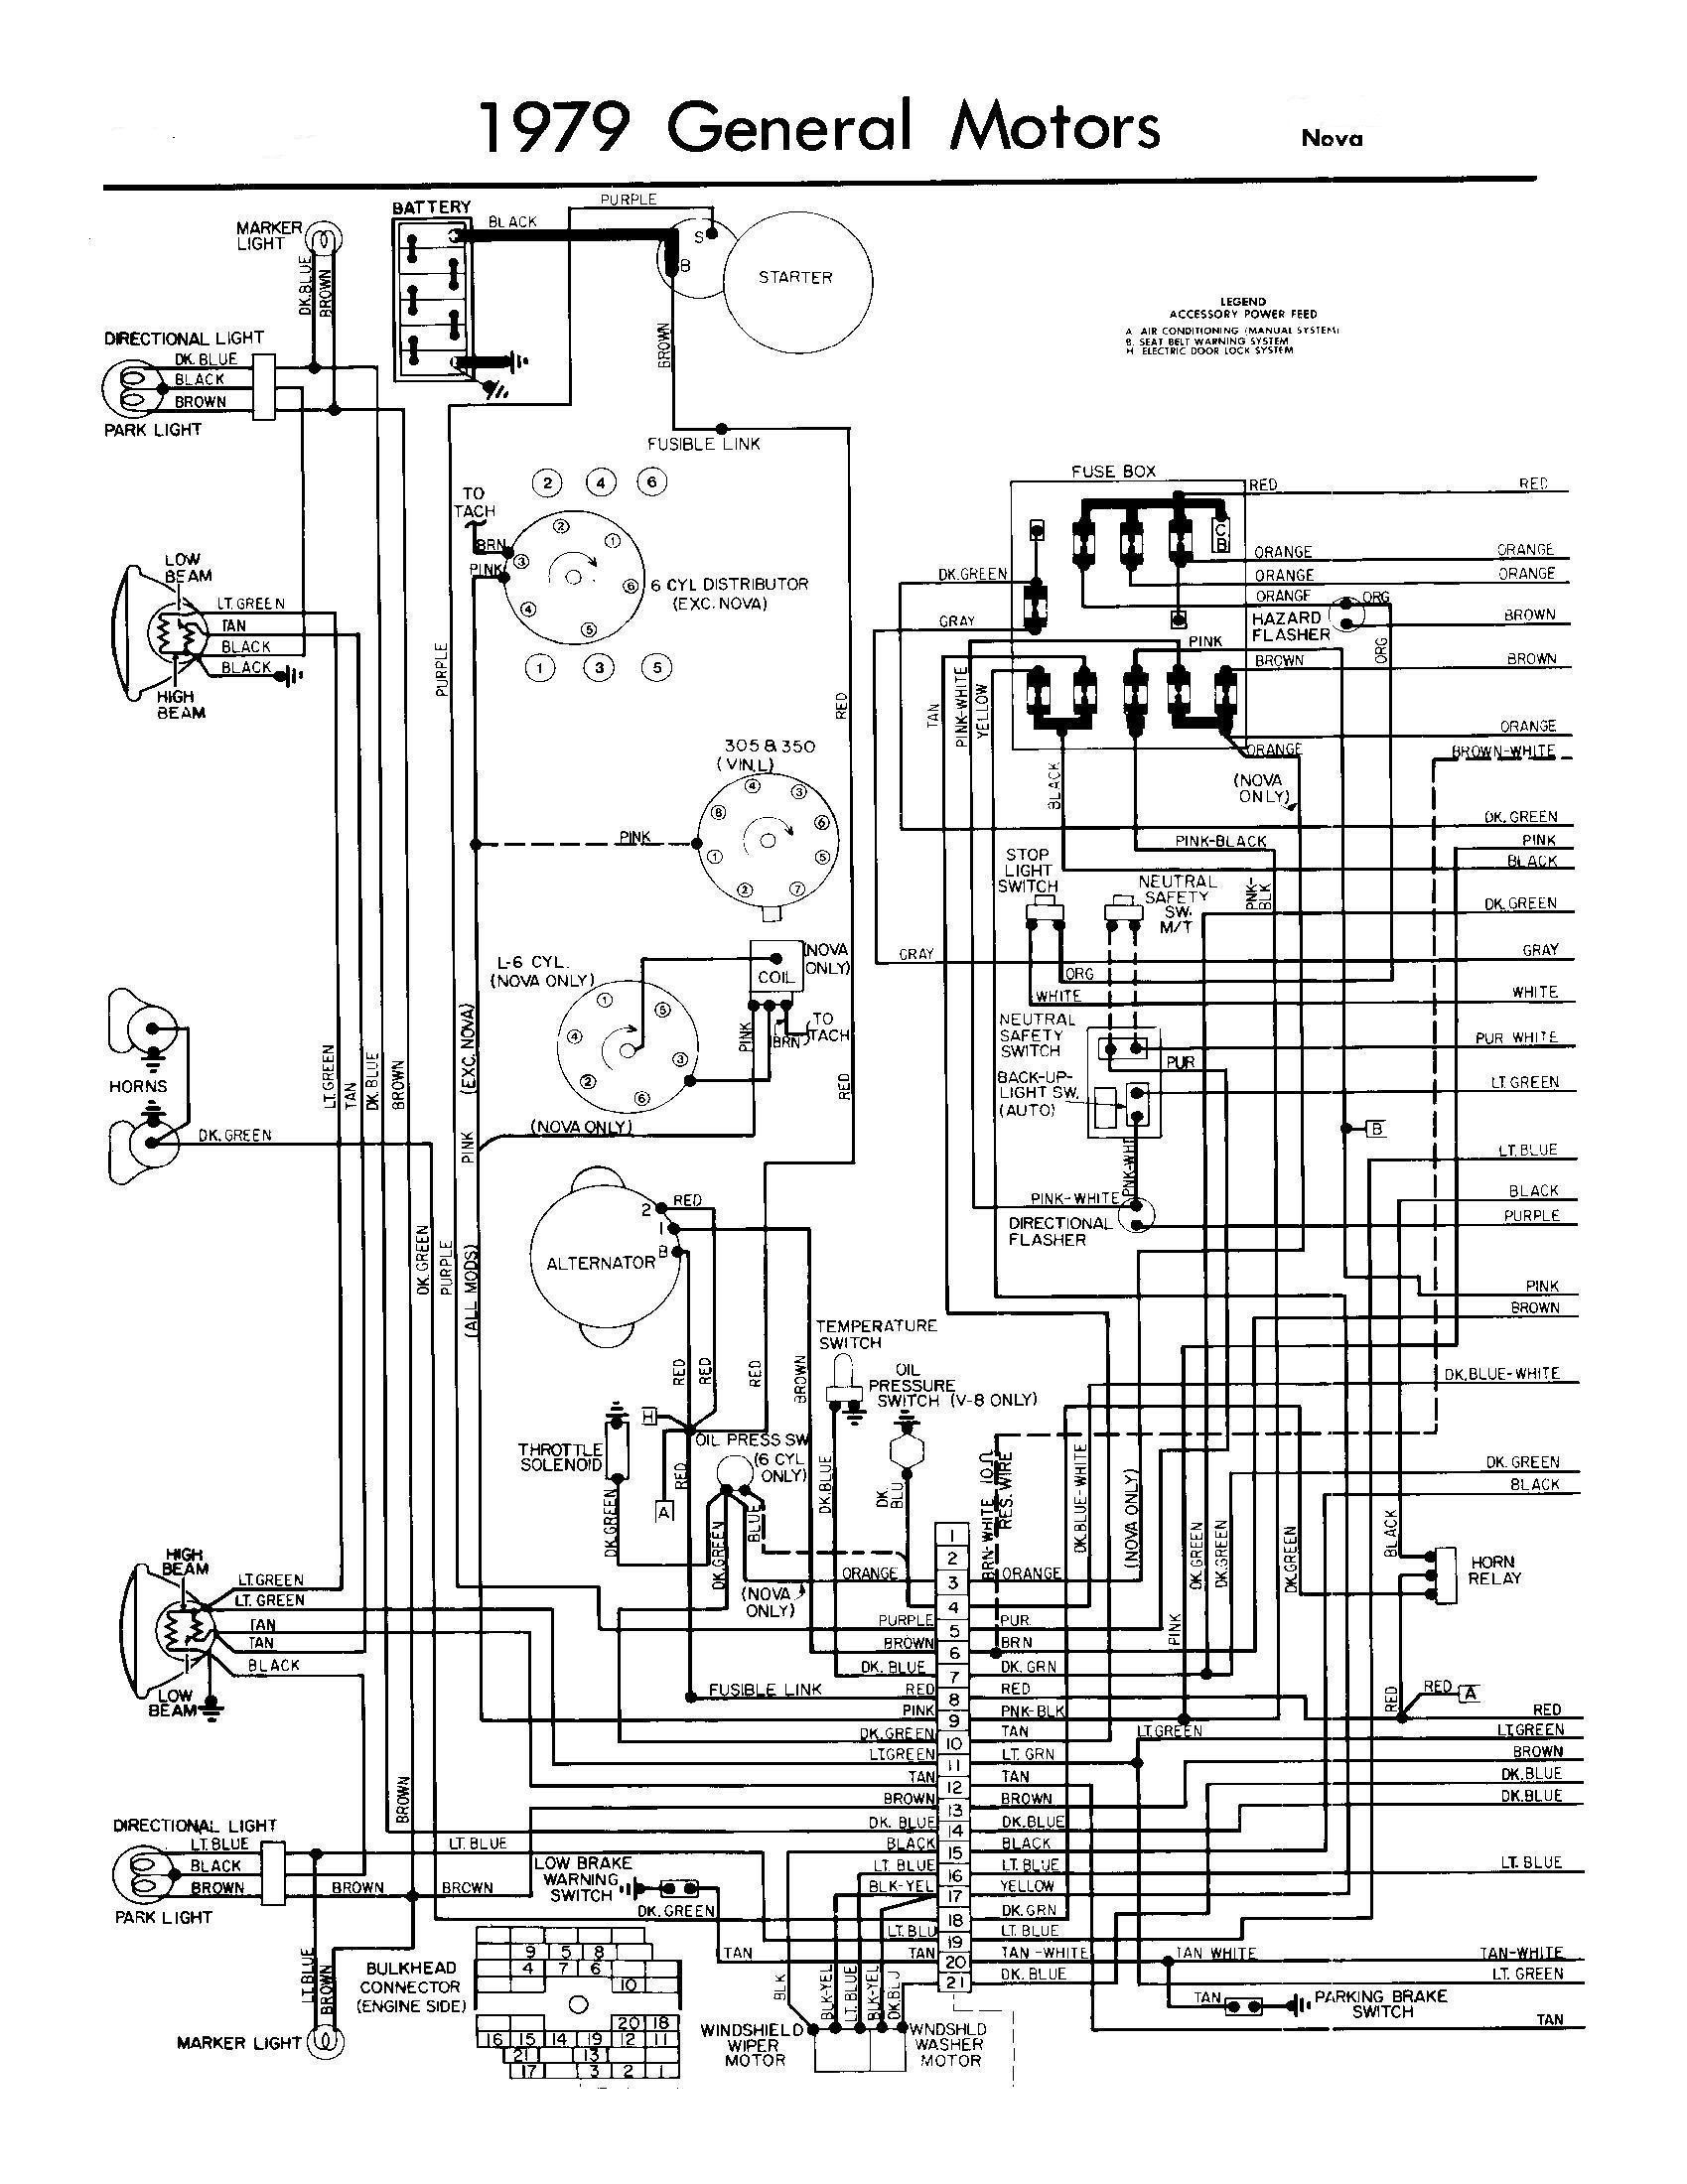 1984 C10 Ac Switch Wiring - Online Schematic Diagram •